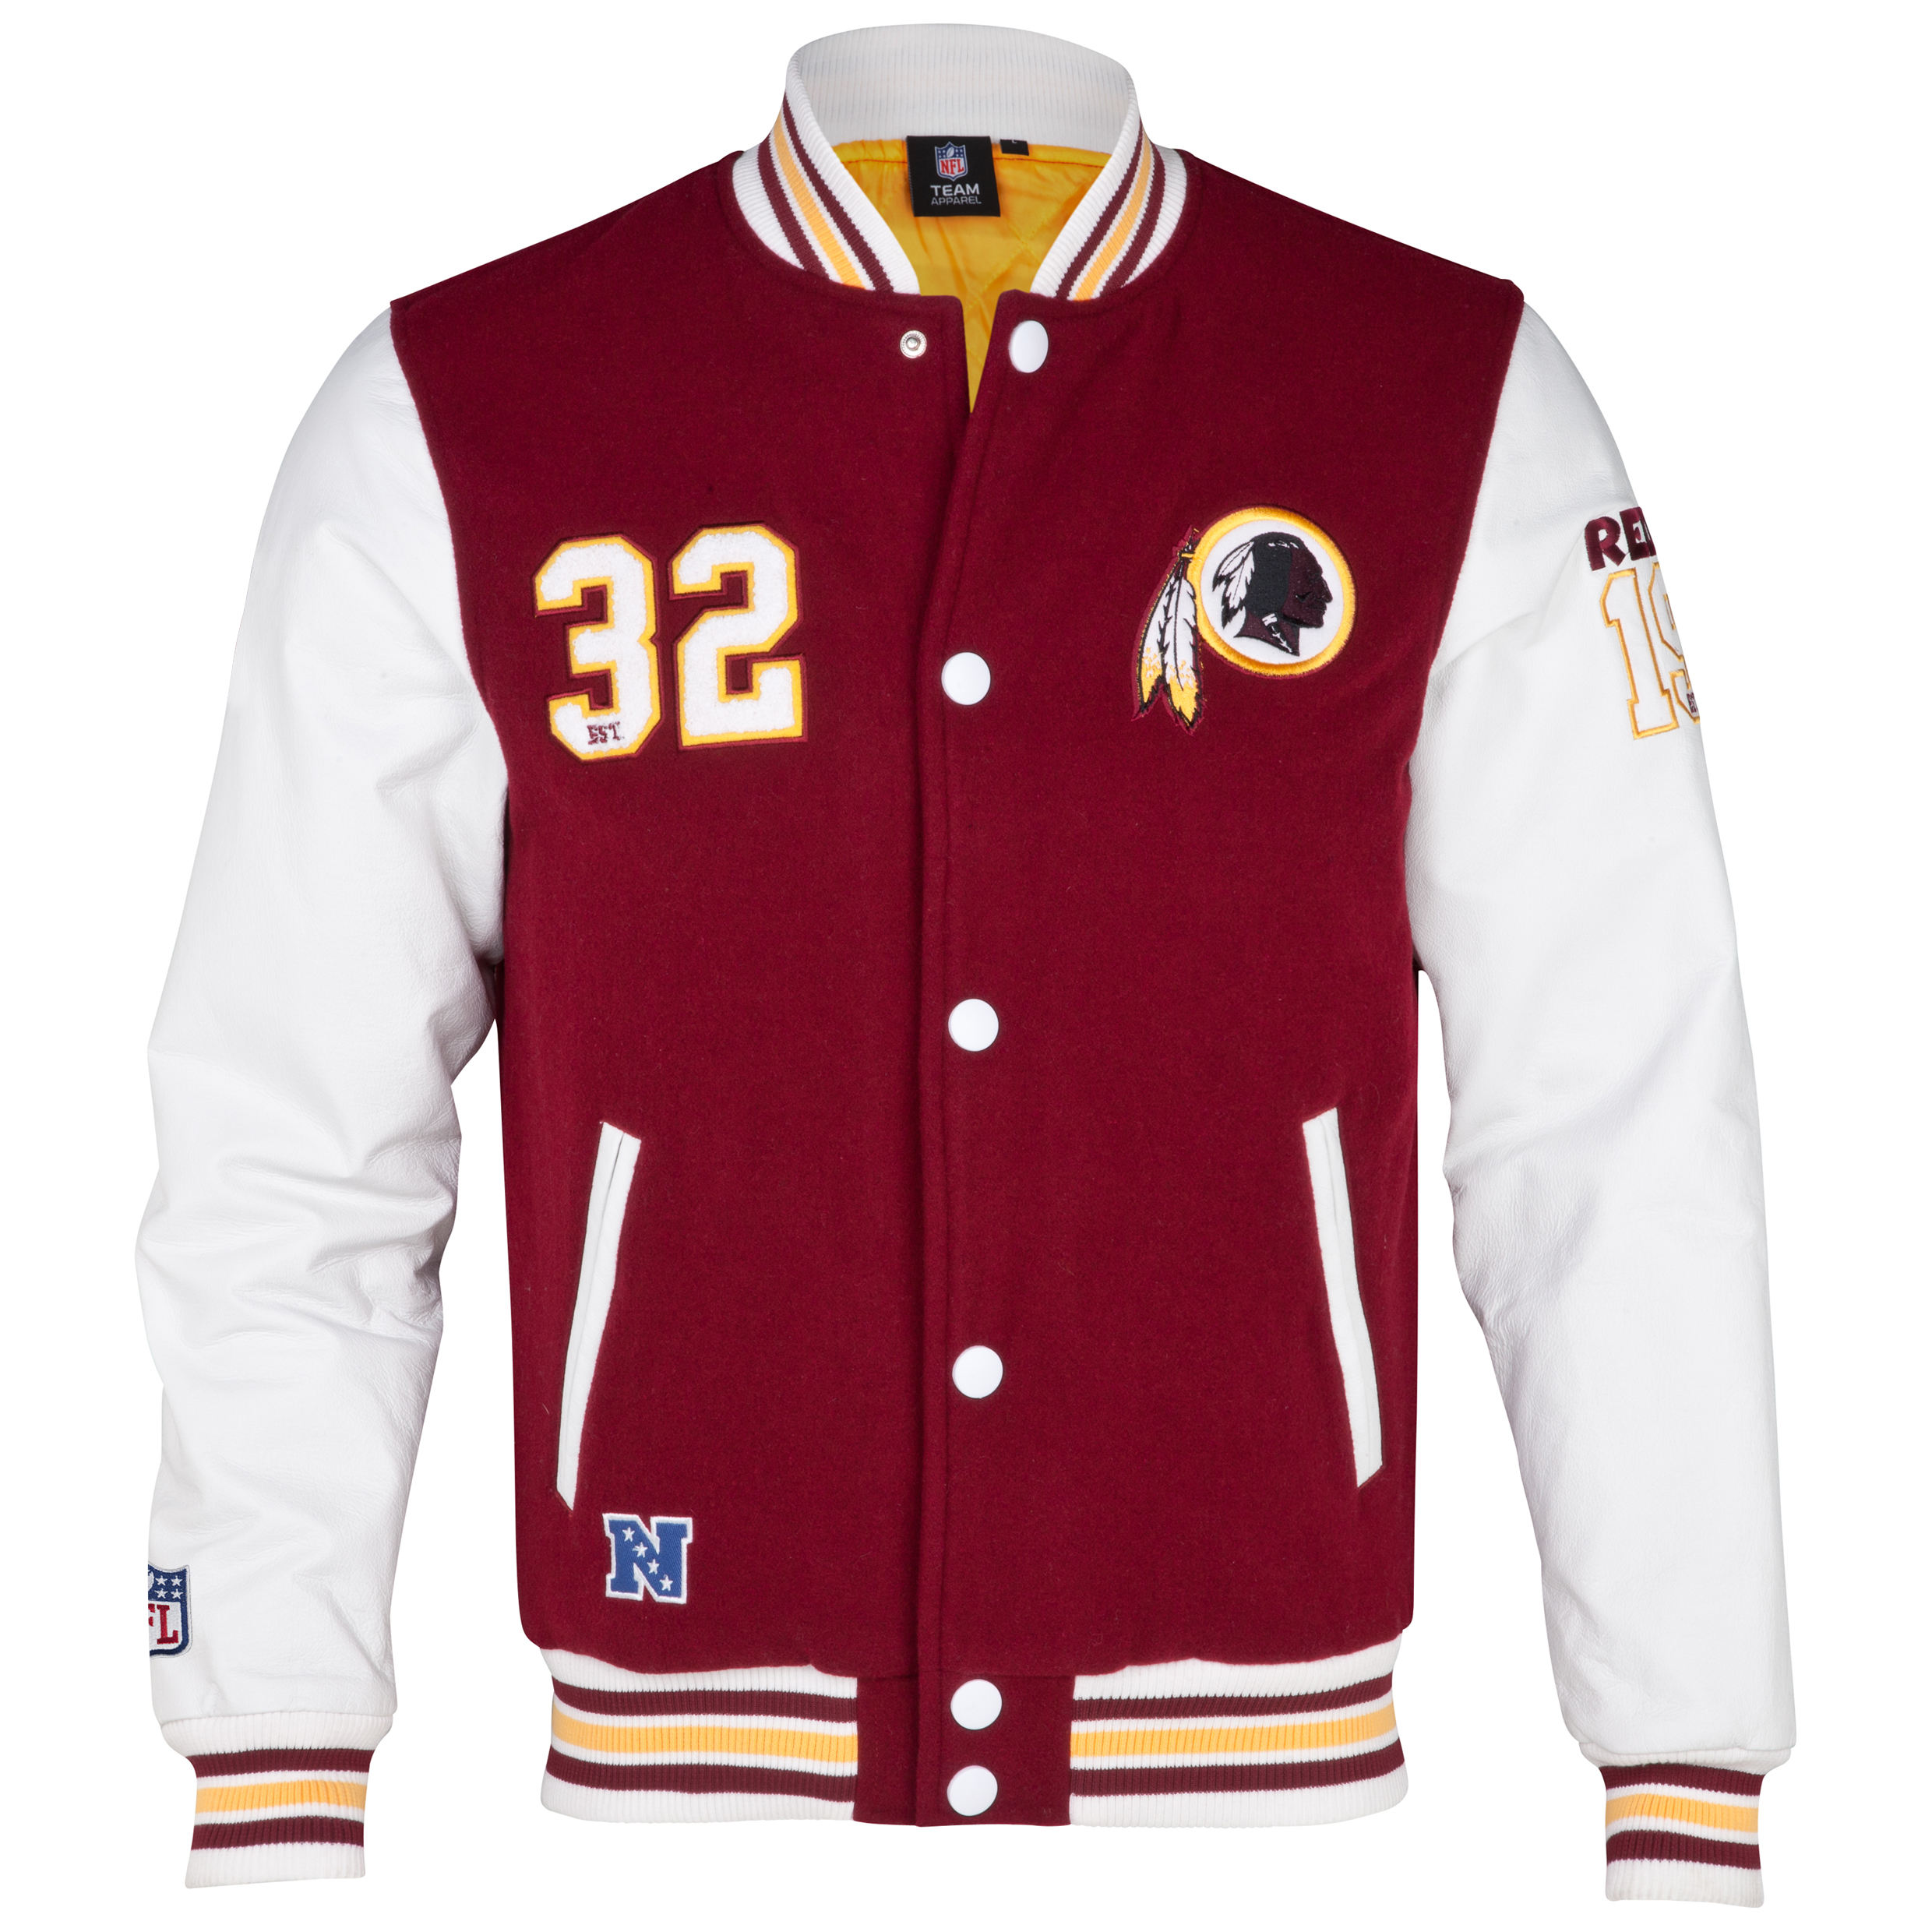 Washington Redskins Gridiron Letterman Jacket